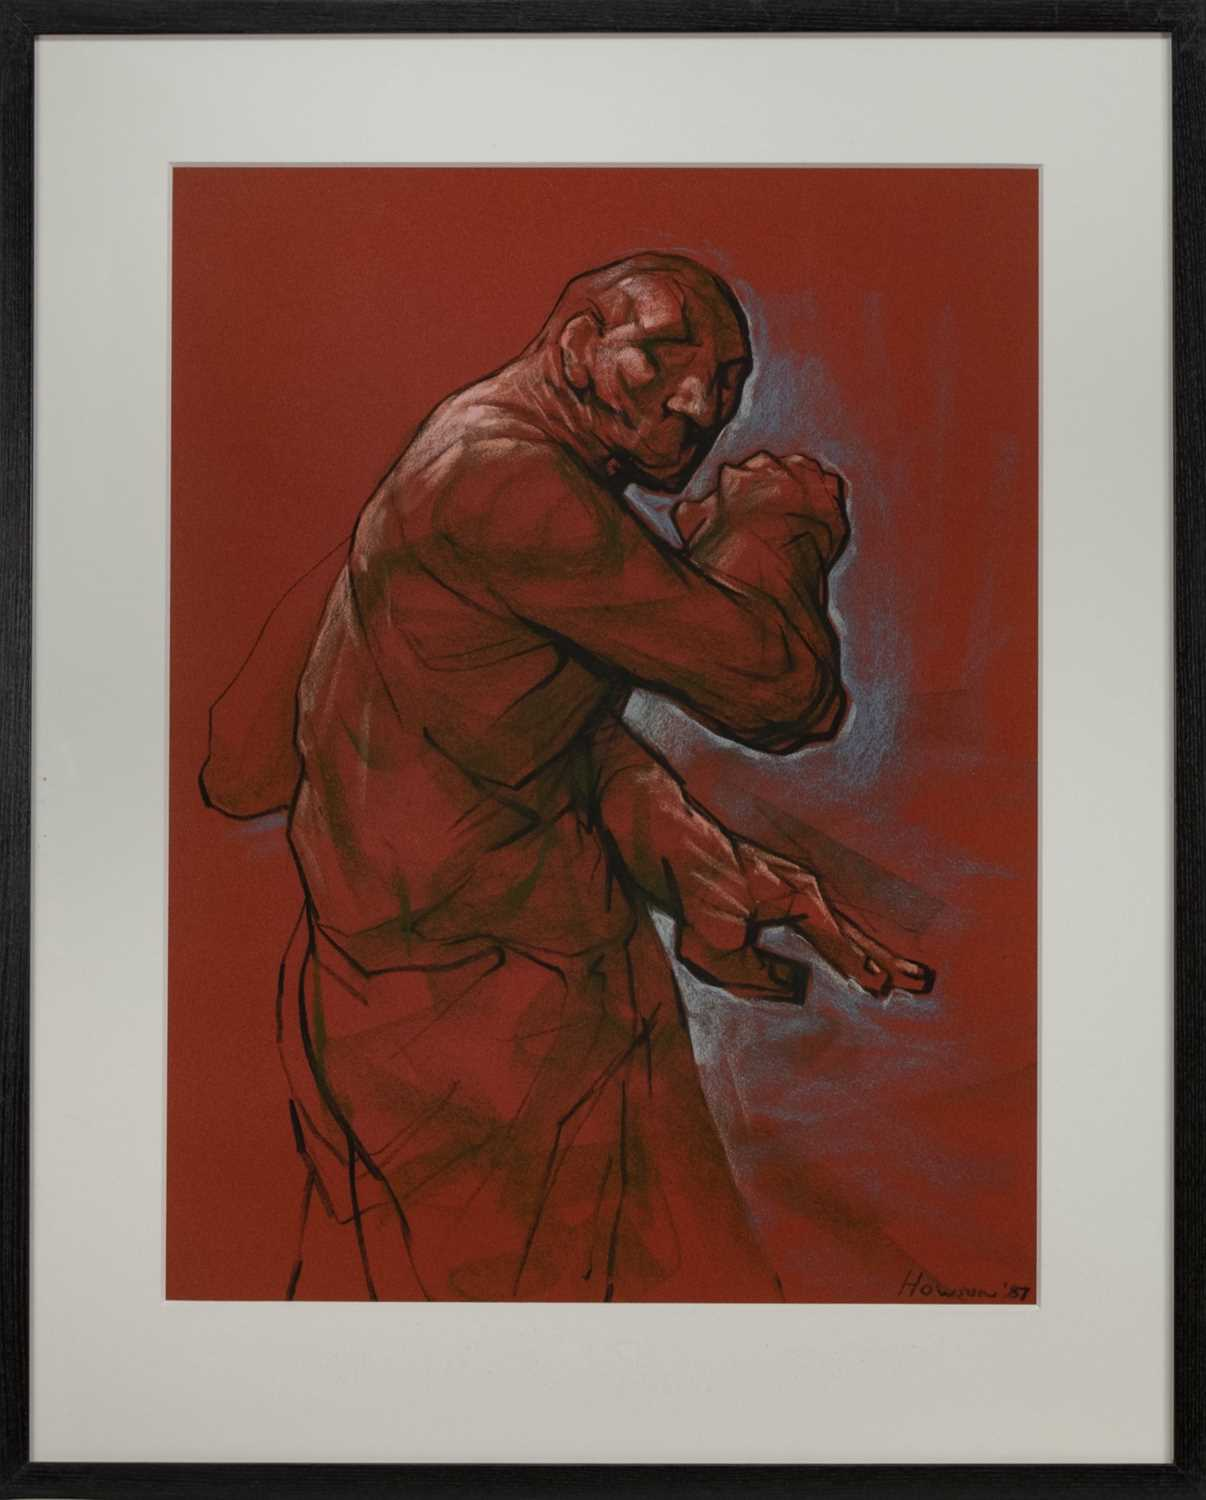 Lot 507 - BAR 67 (STUDY), A PASTEL BY PETER HOWSON